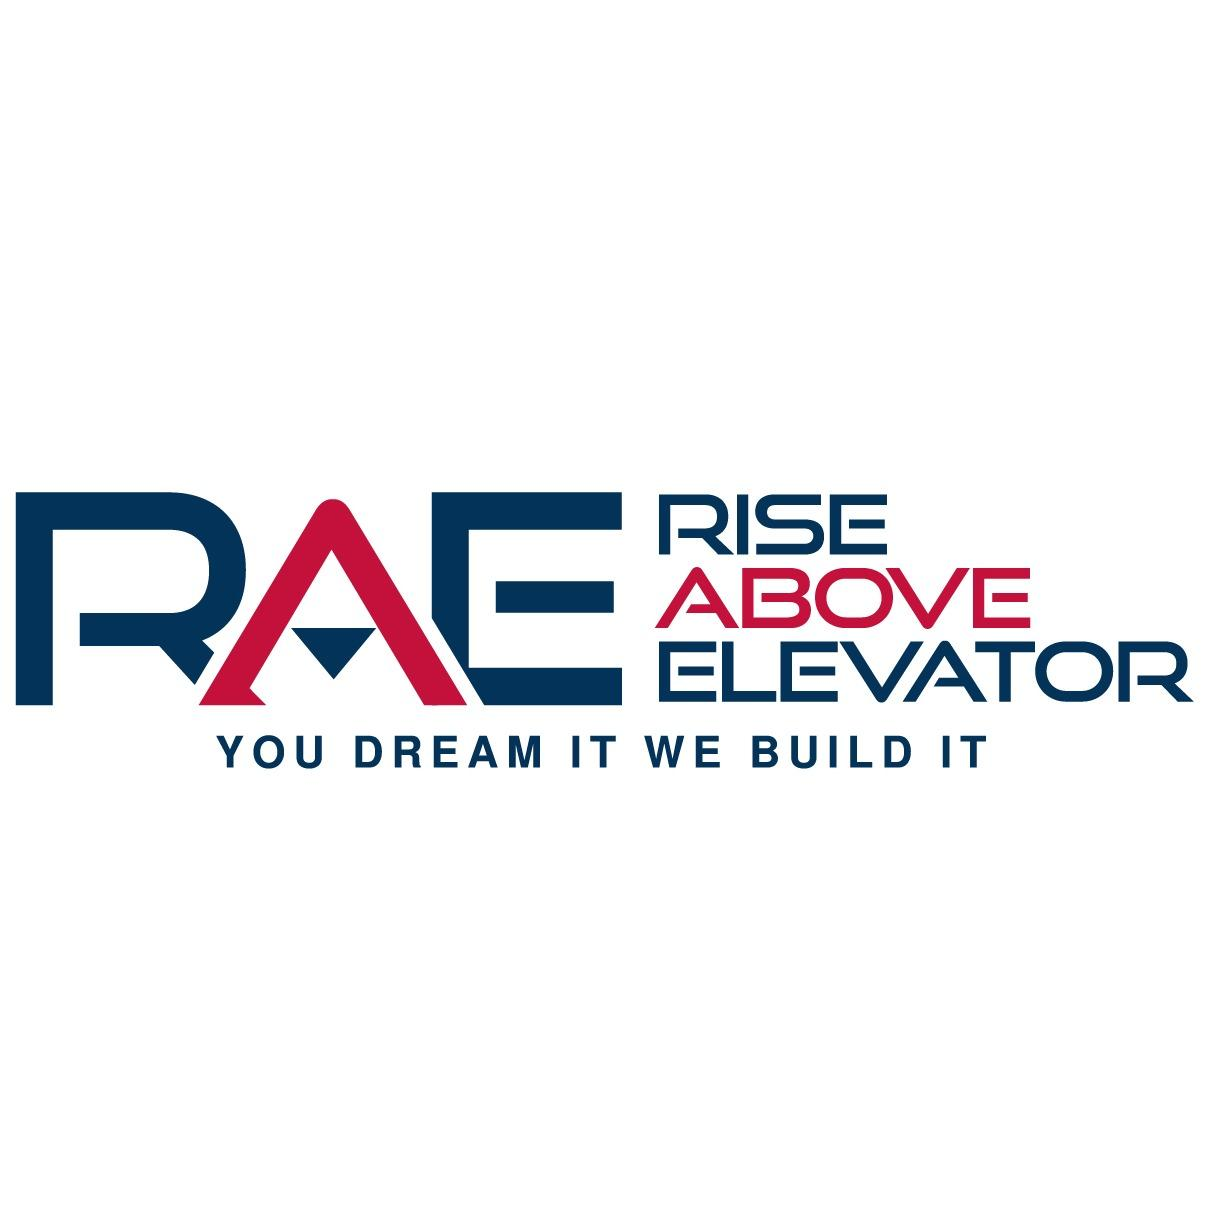 Rise Above Elevator - Port St. Lucie, FL 34983 - (772)240-5777 | ShowMeLocal.com